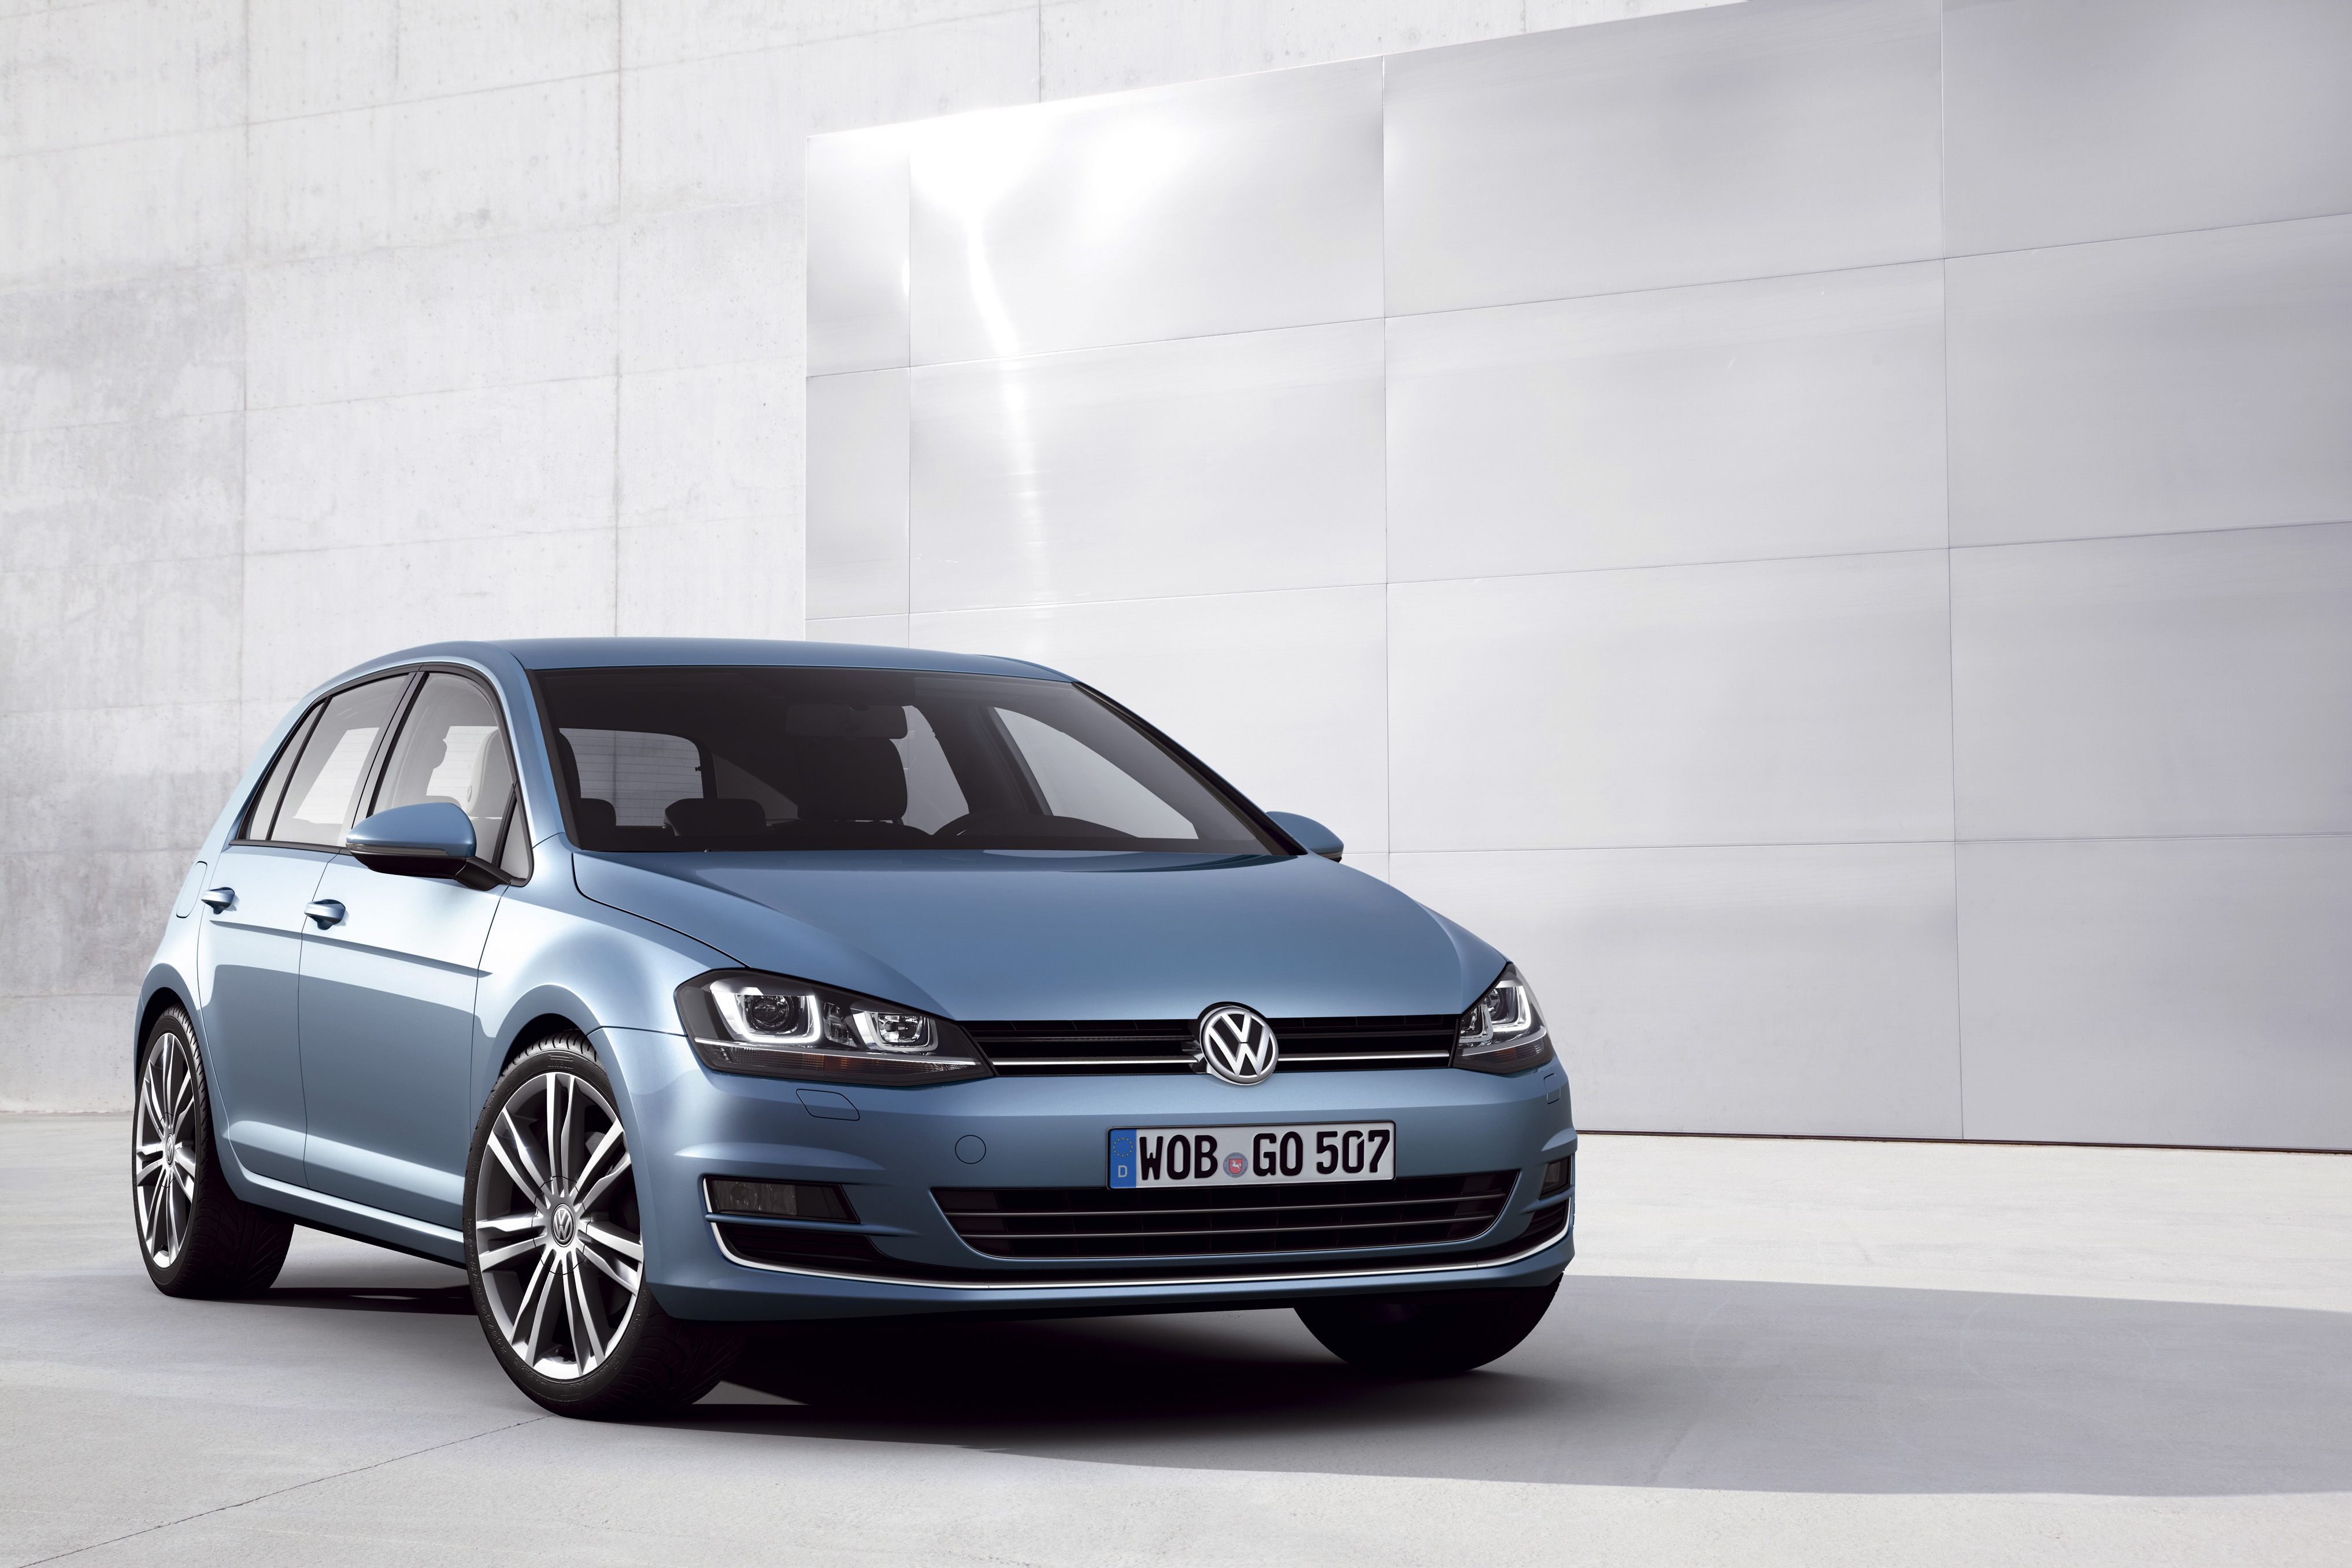 The Volkswagen Golf 7.